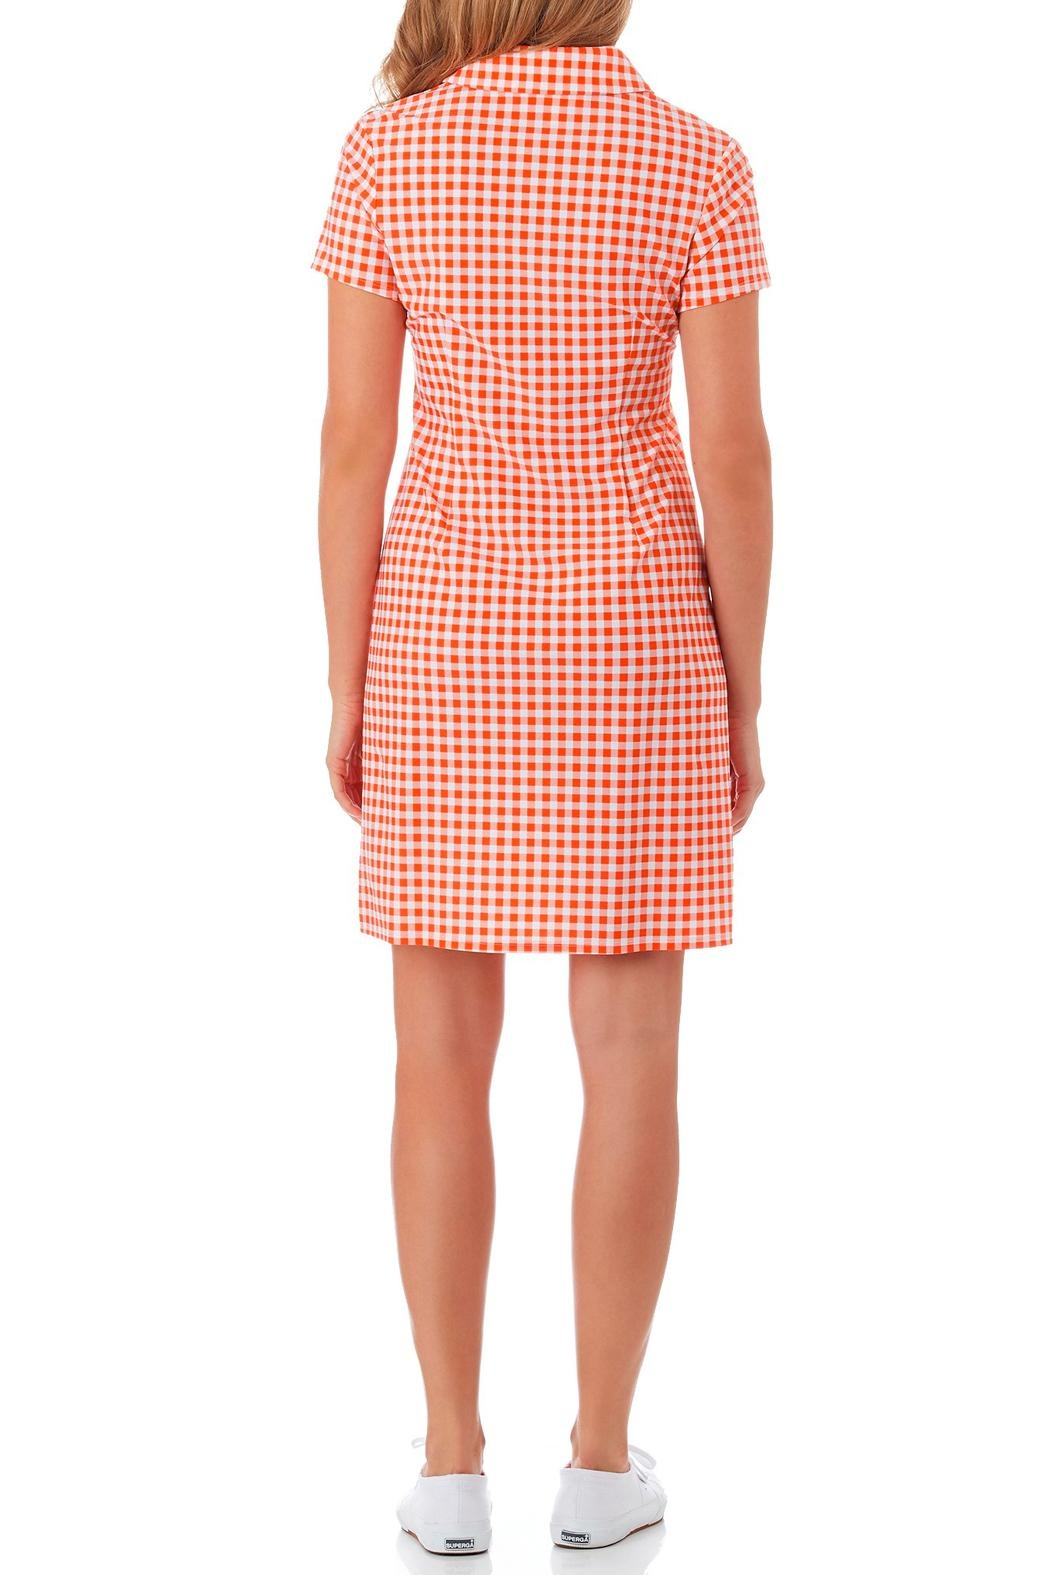 Jude Connally Emily Polo Dress - Front Full Image